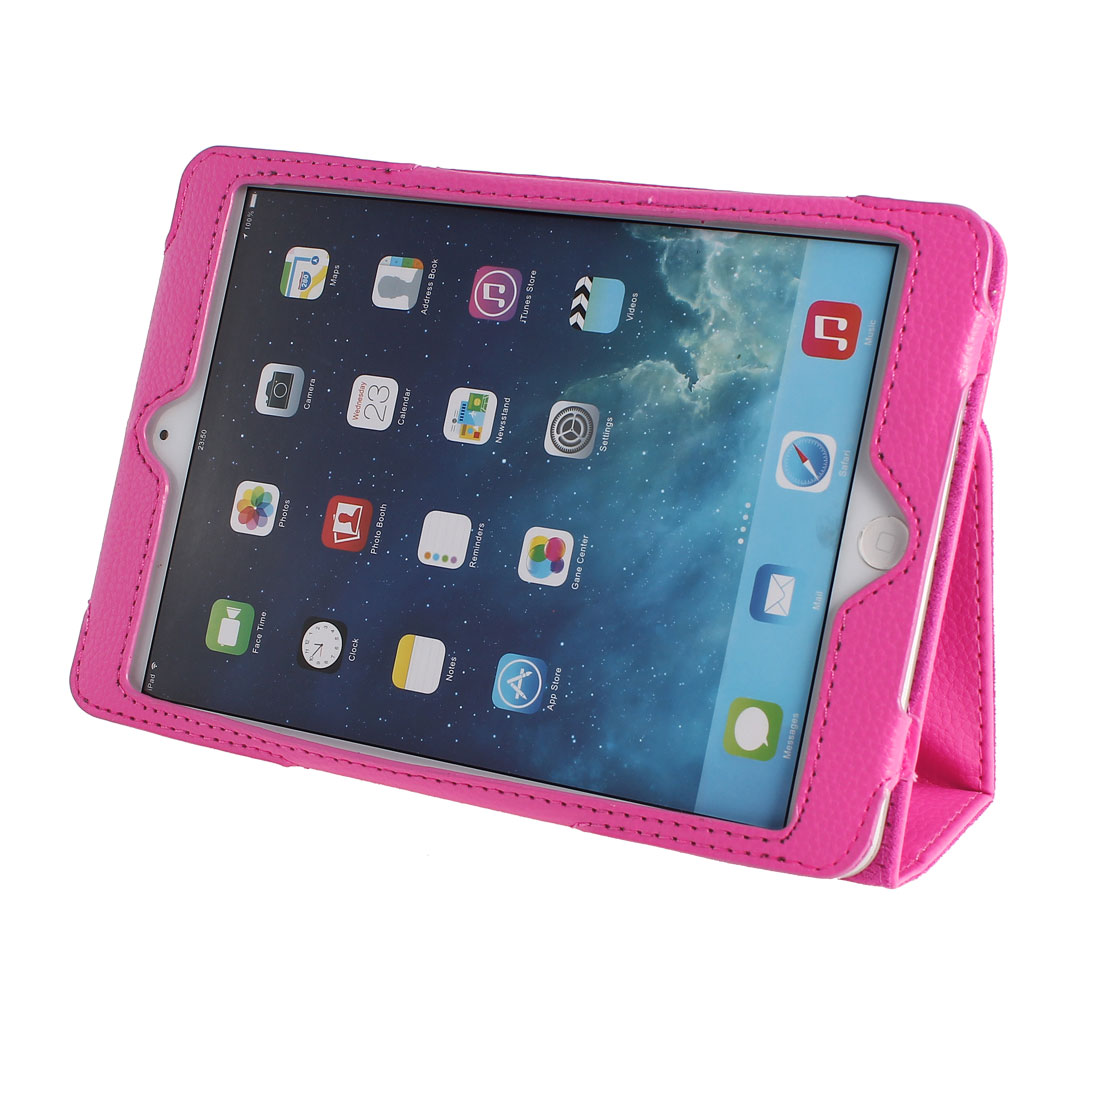 PU Leather Stand Magnet Folio Flip Tablet Protective Case Cover Pink for iPad Mini 1 2